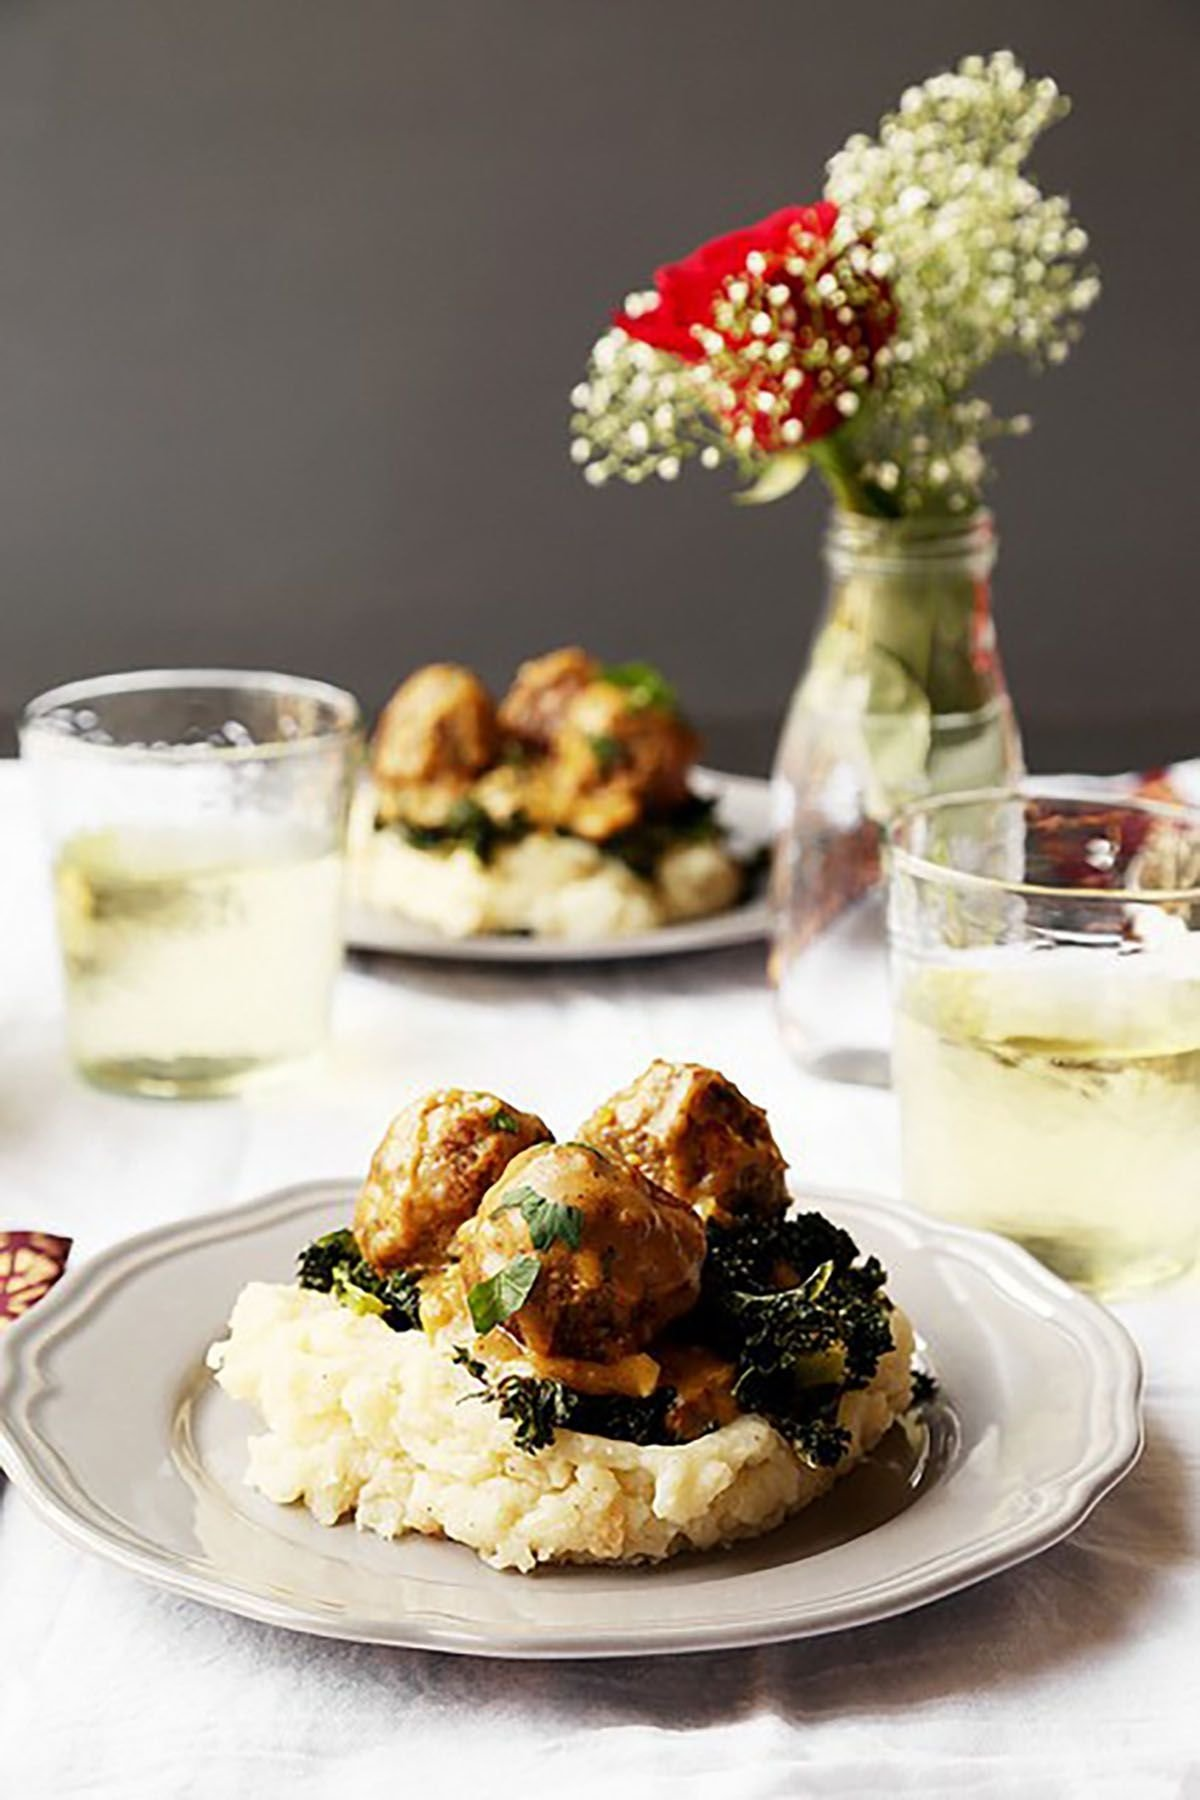 10 fantastic dinner recipe ideas for two